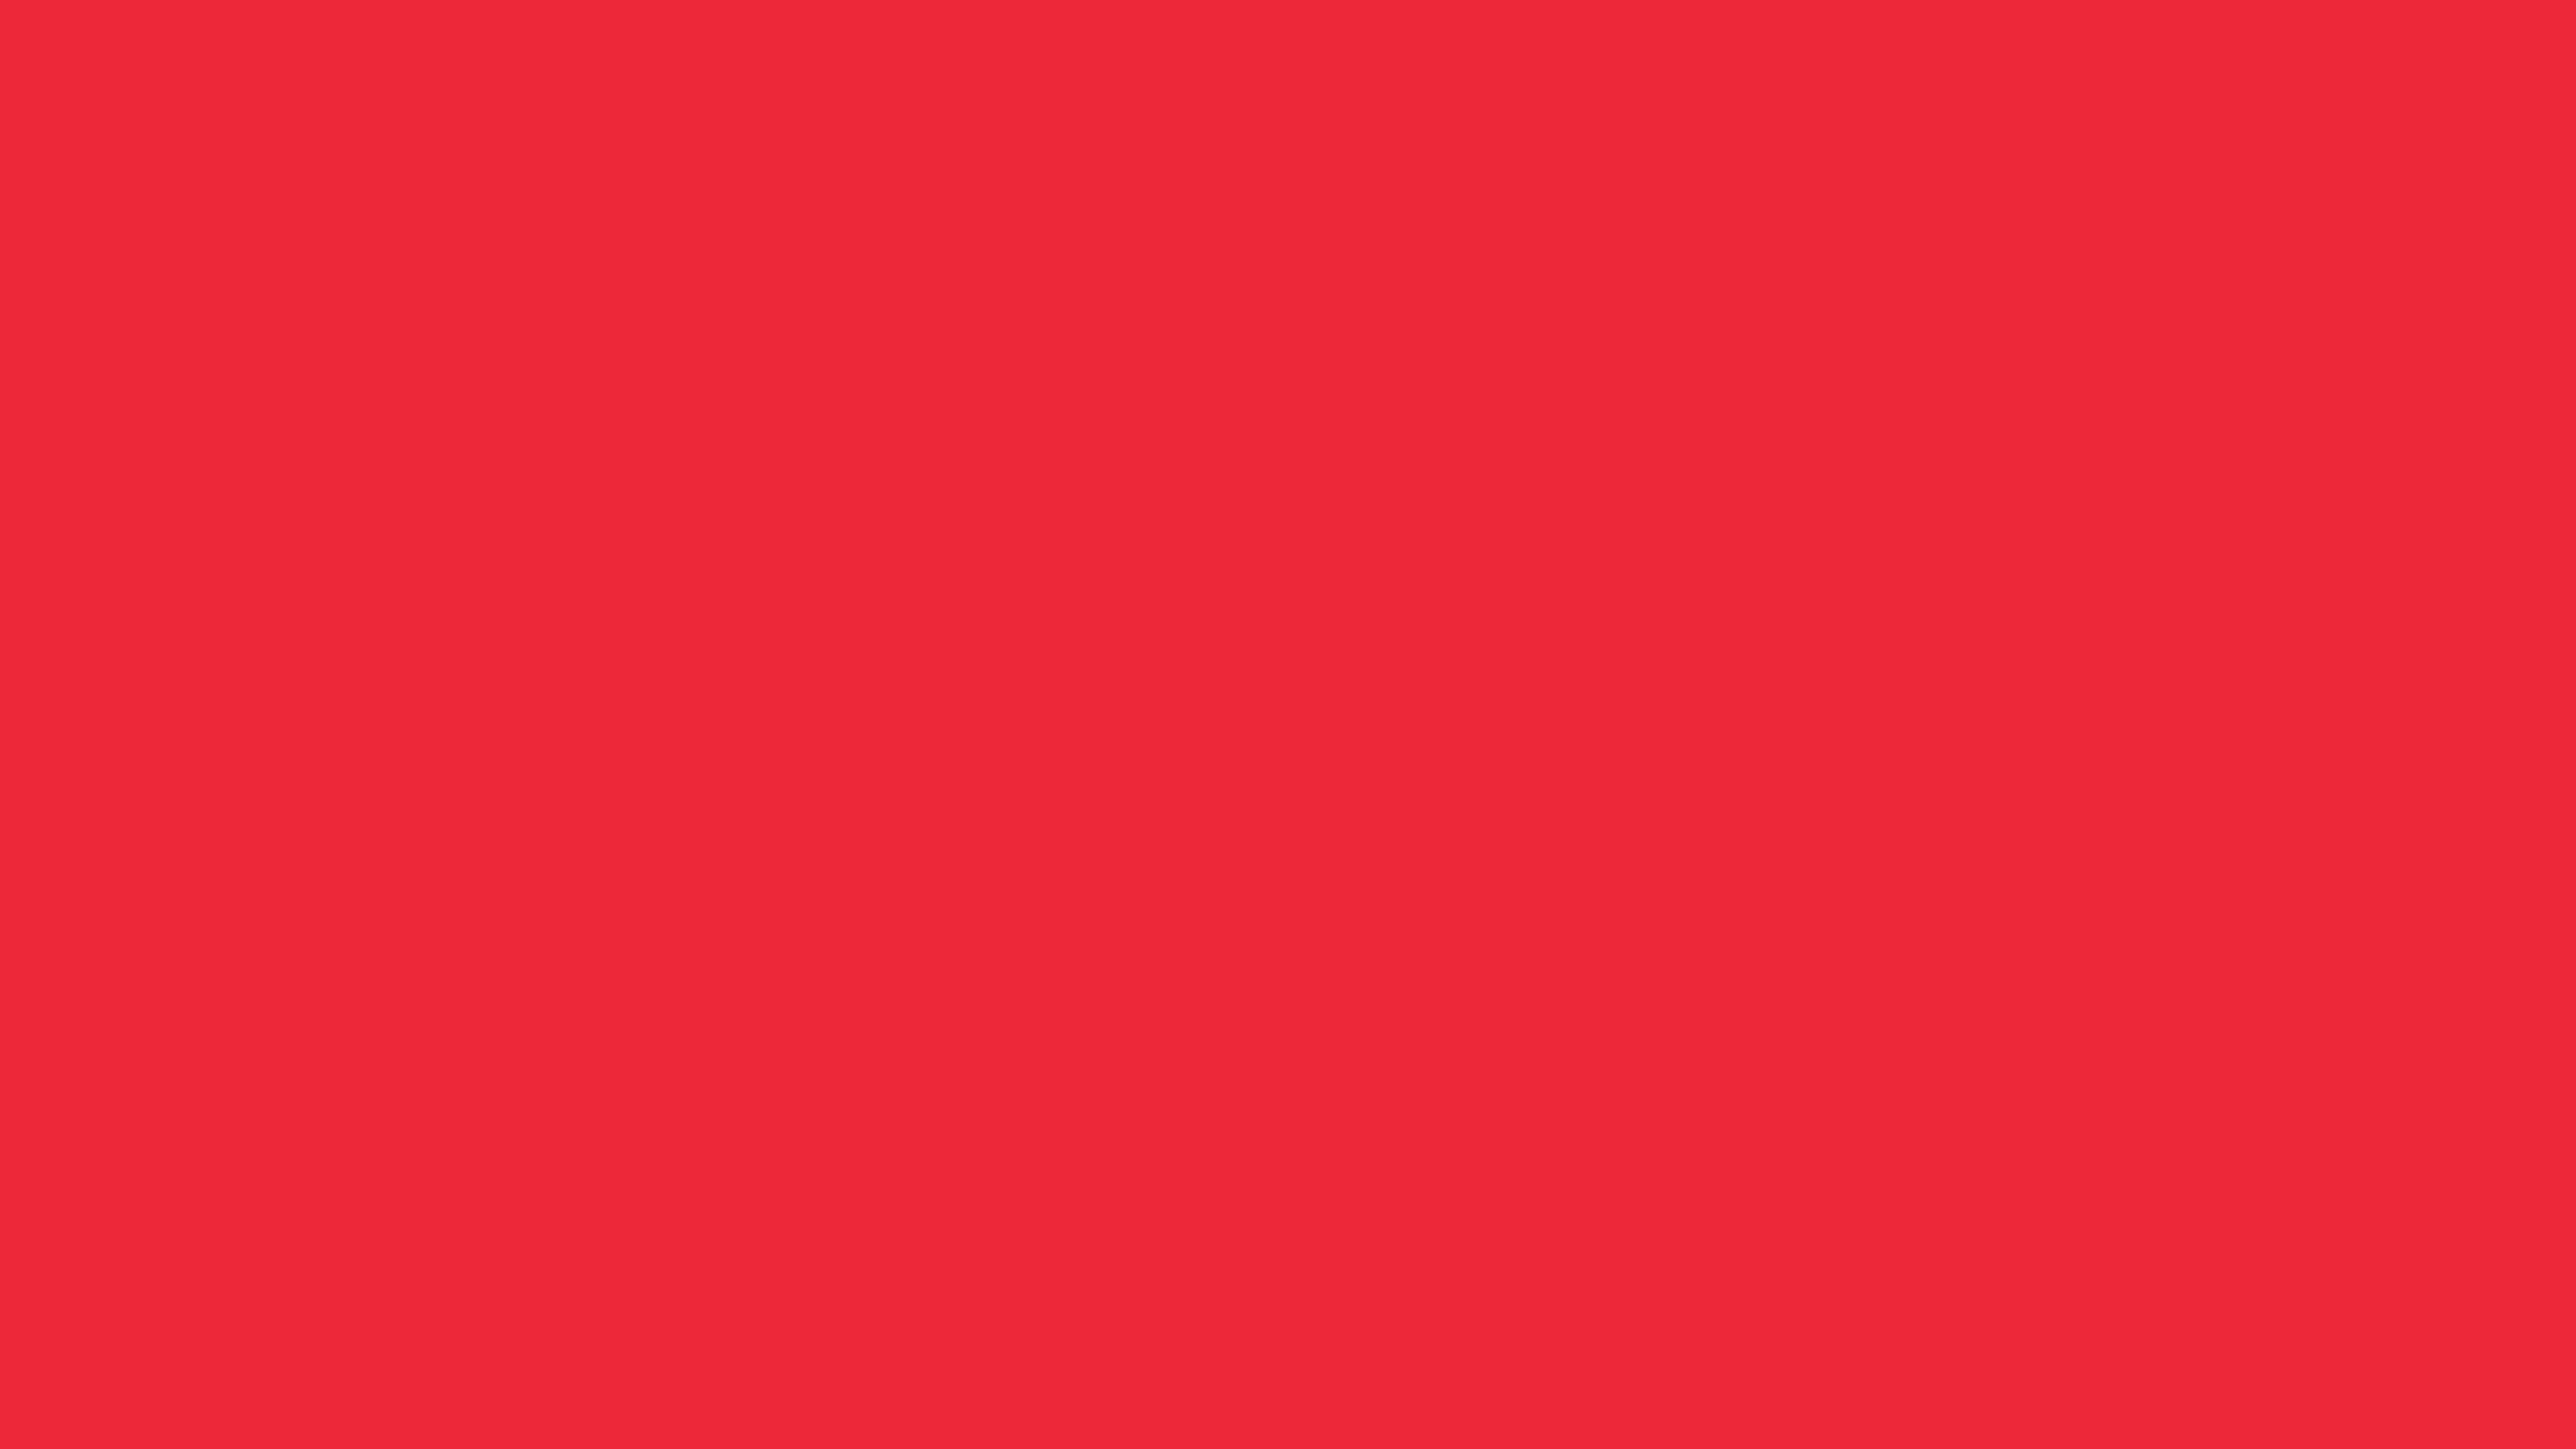 3840x2160 Red Pantone Solid Color Background